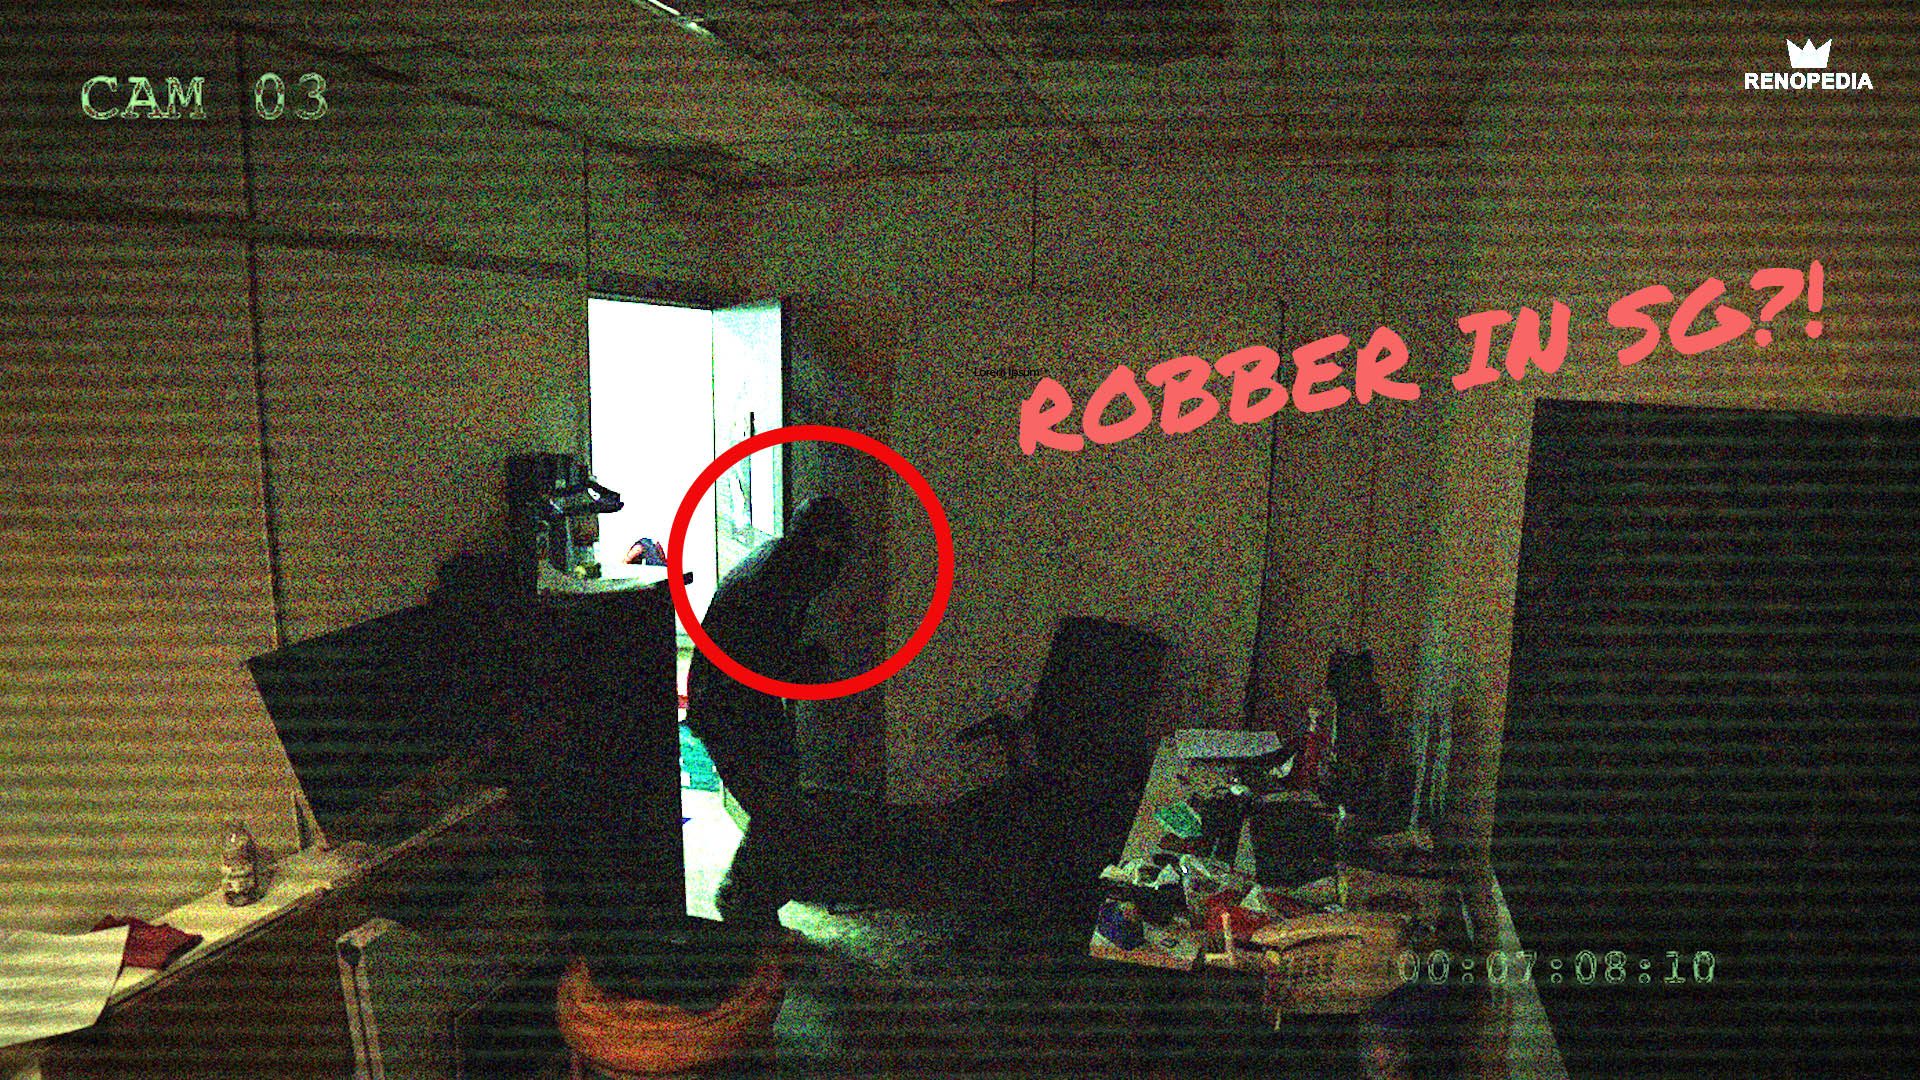 Robber In Singapore Caught On Tape!